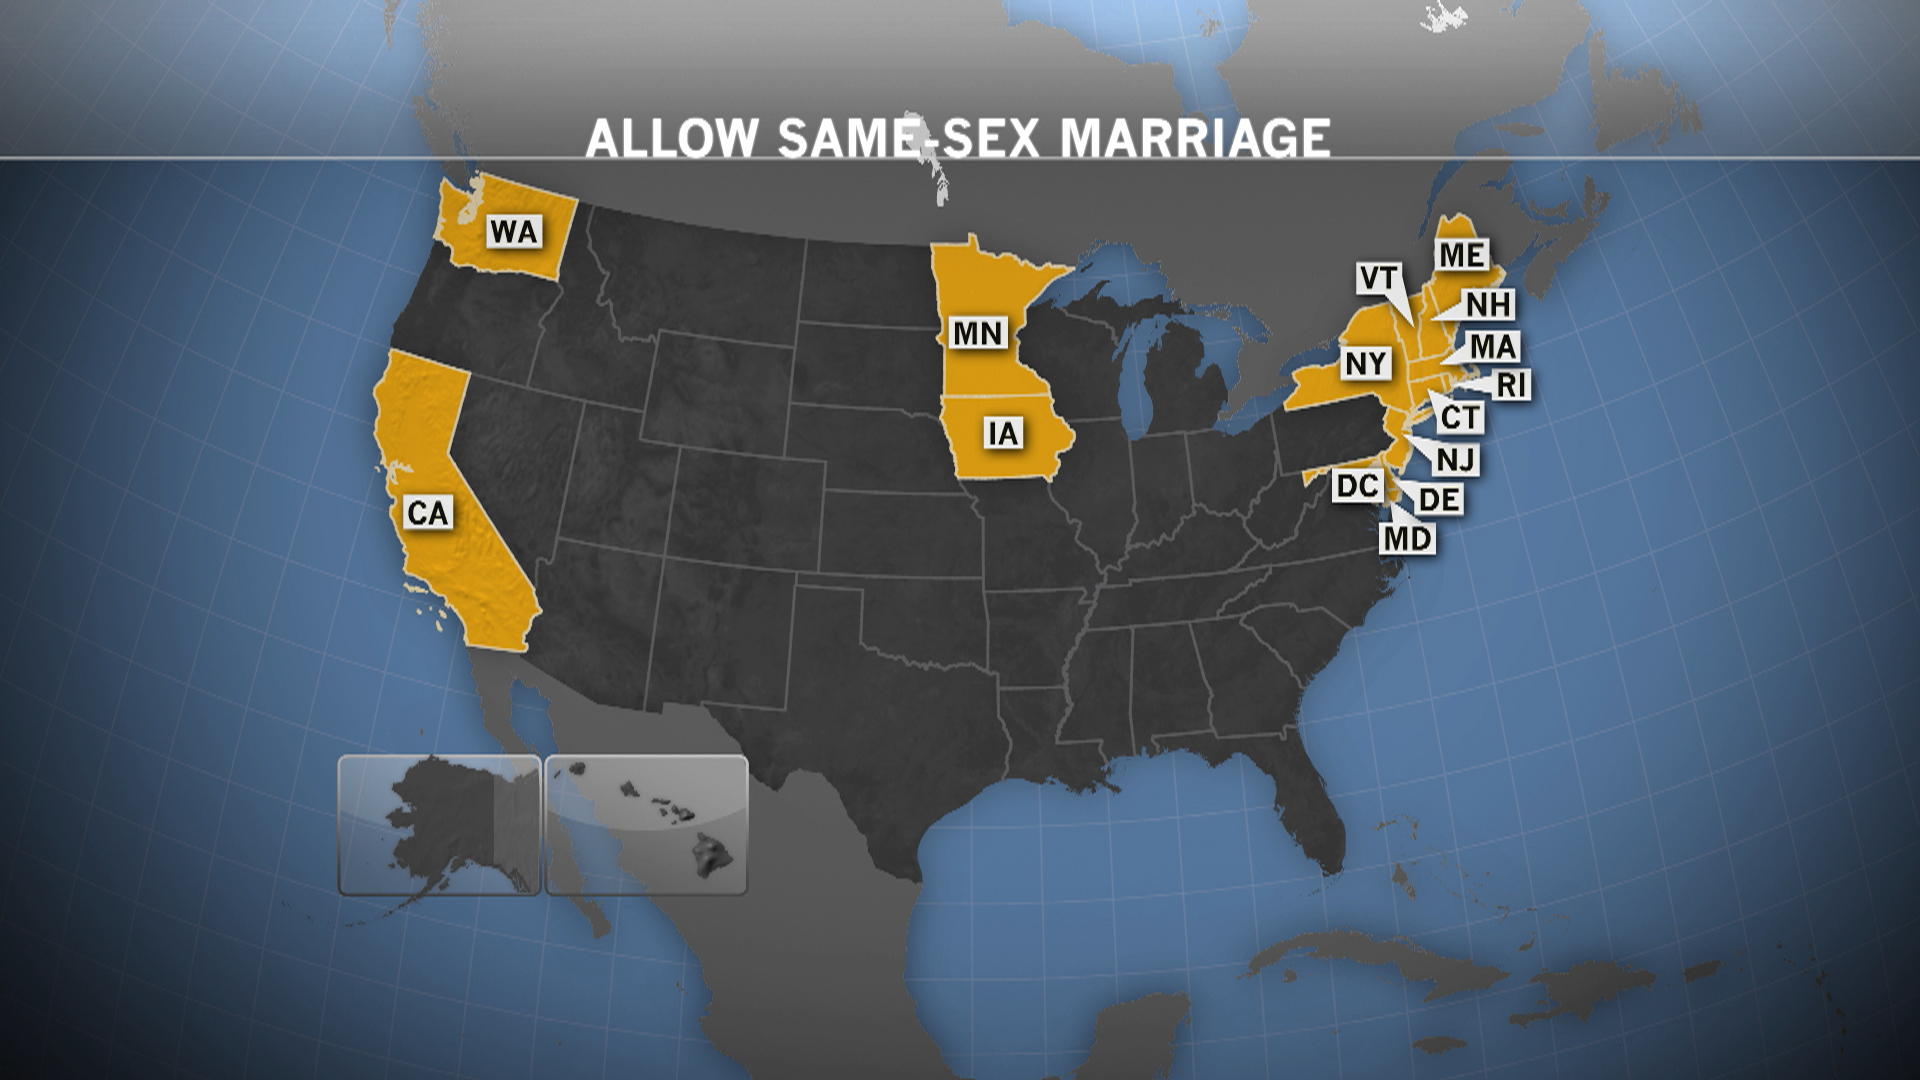 Marriage equality in Hawaii?